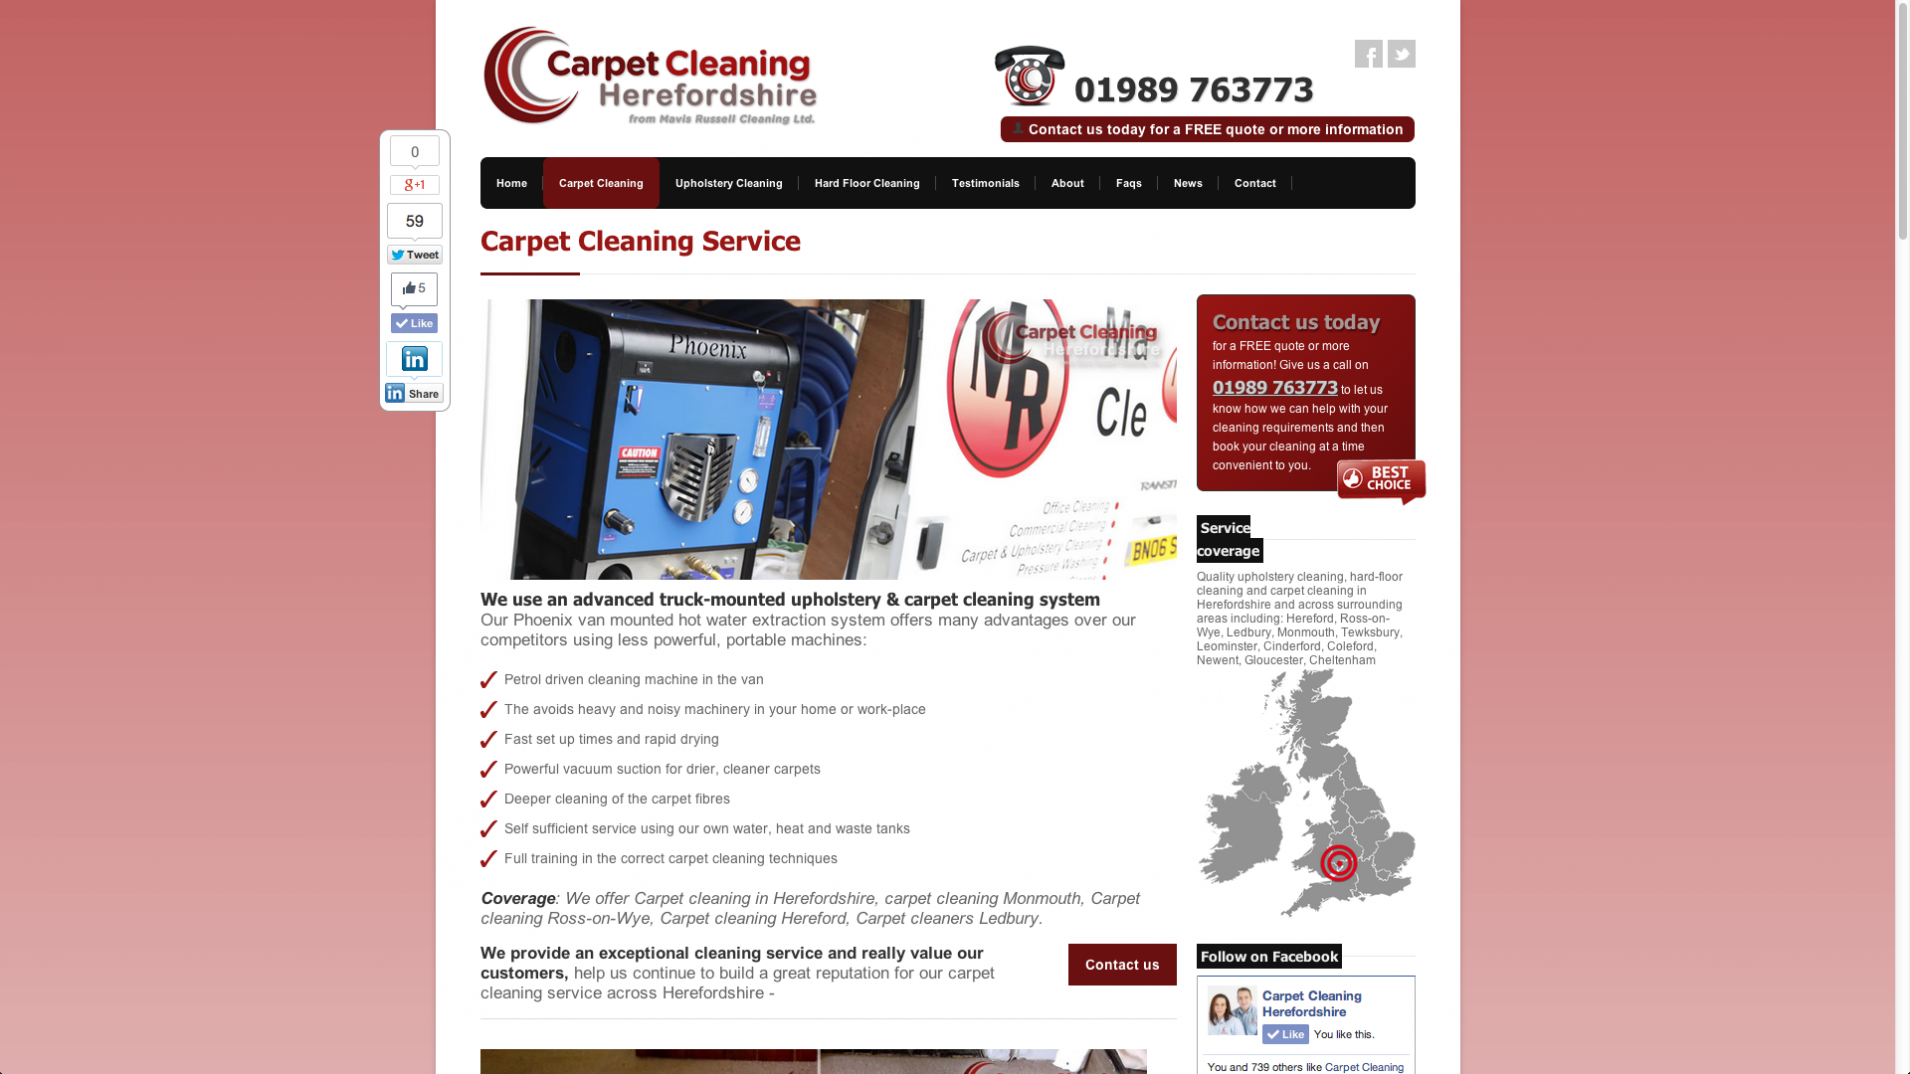 Screen Shot 2013 12 23 at 16.22.35 - Website design for floorcare company